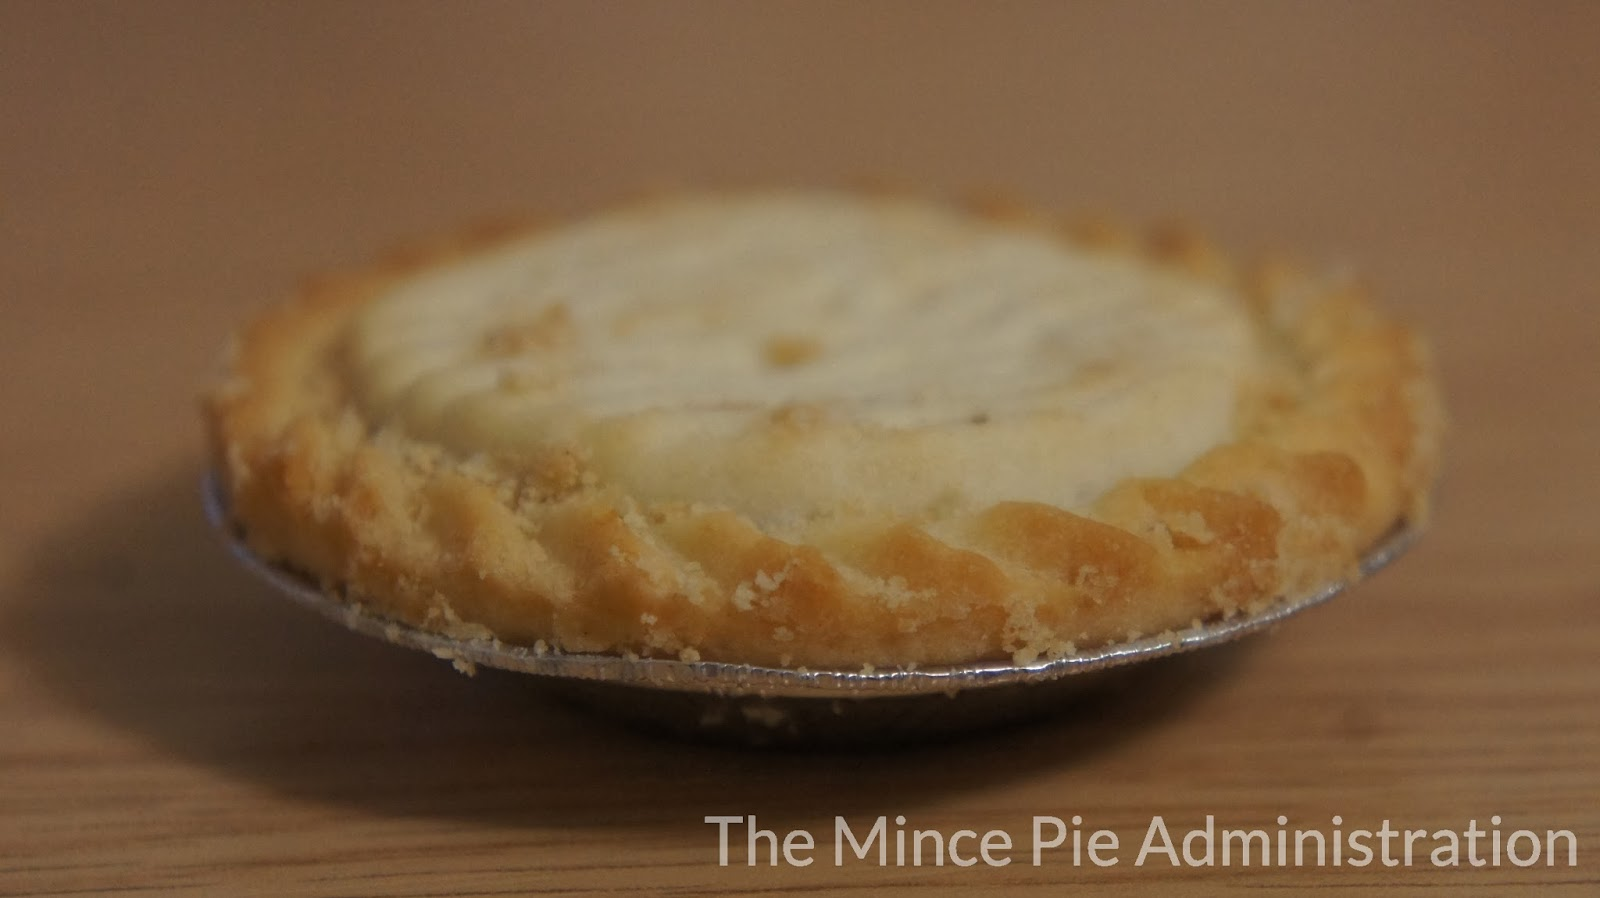 the_mince_pie_administration_poundland_hoppers_mince_pies_side.JPG